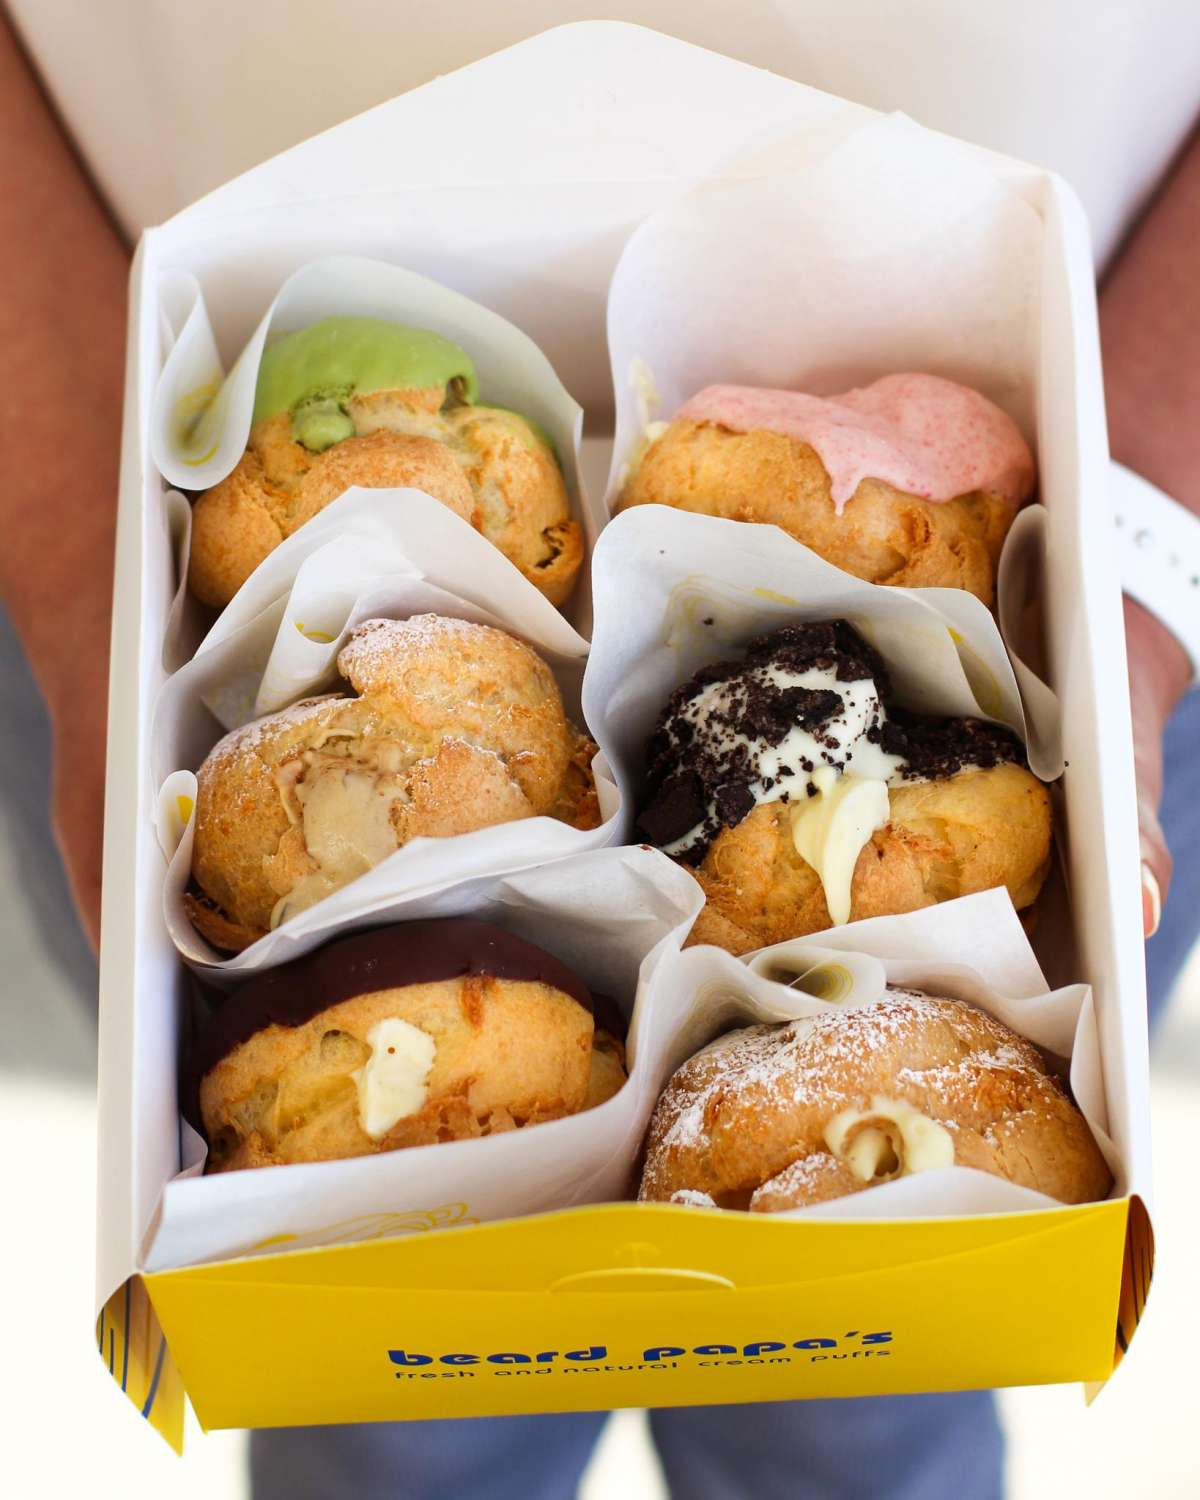 New Japanese pastry shop opening at The Market